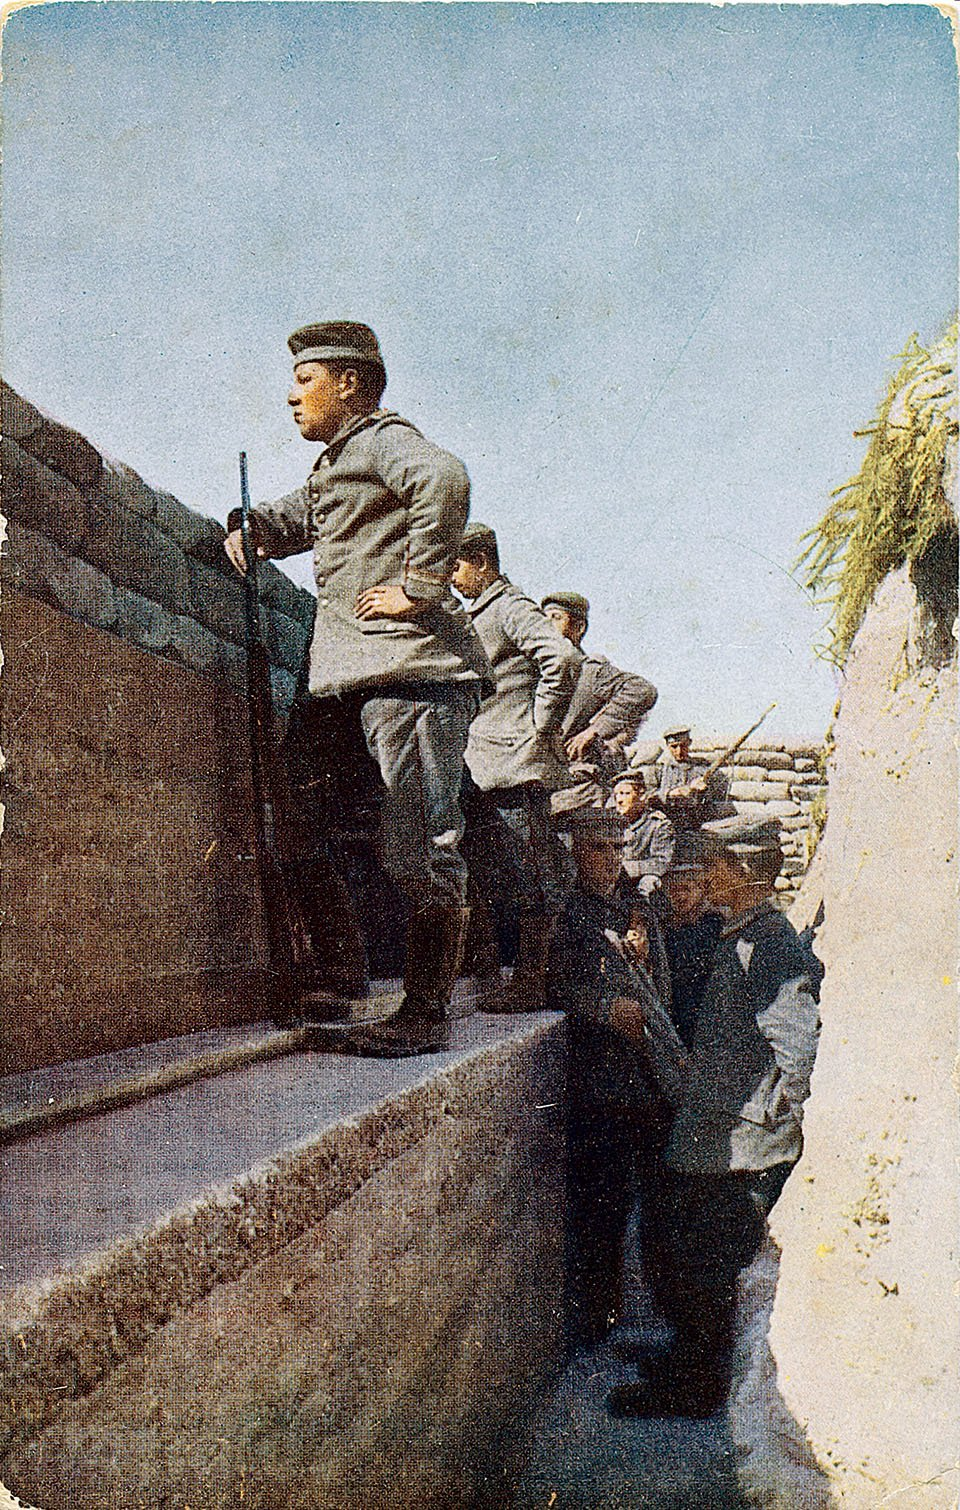 Rare colour photographs show realities of WW1 | First ...